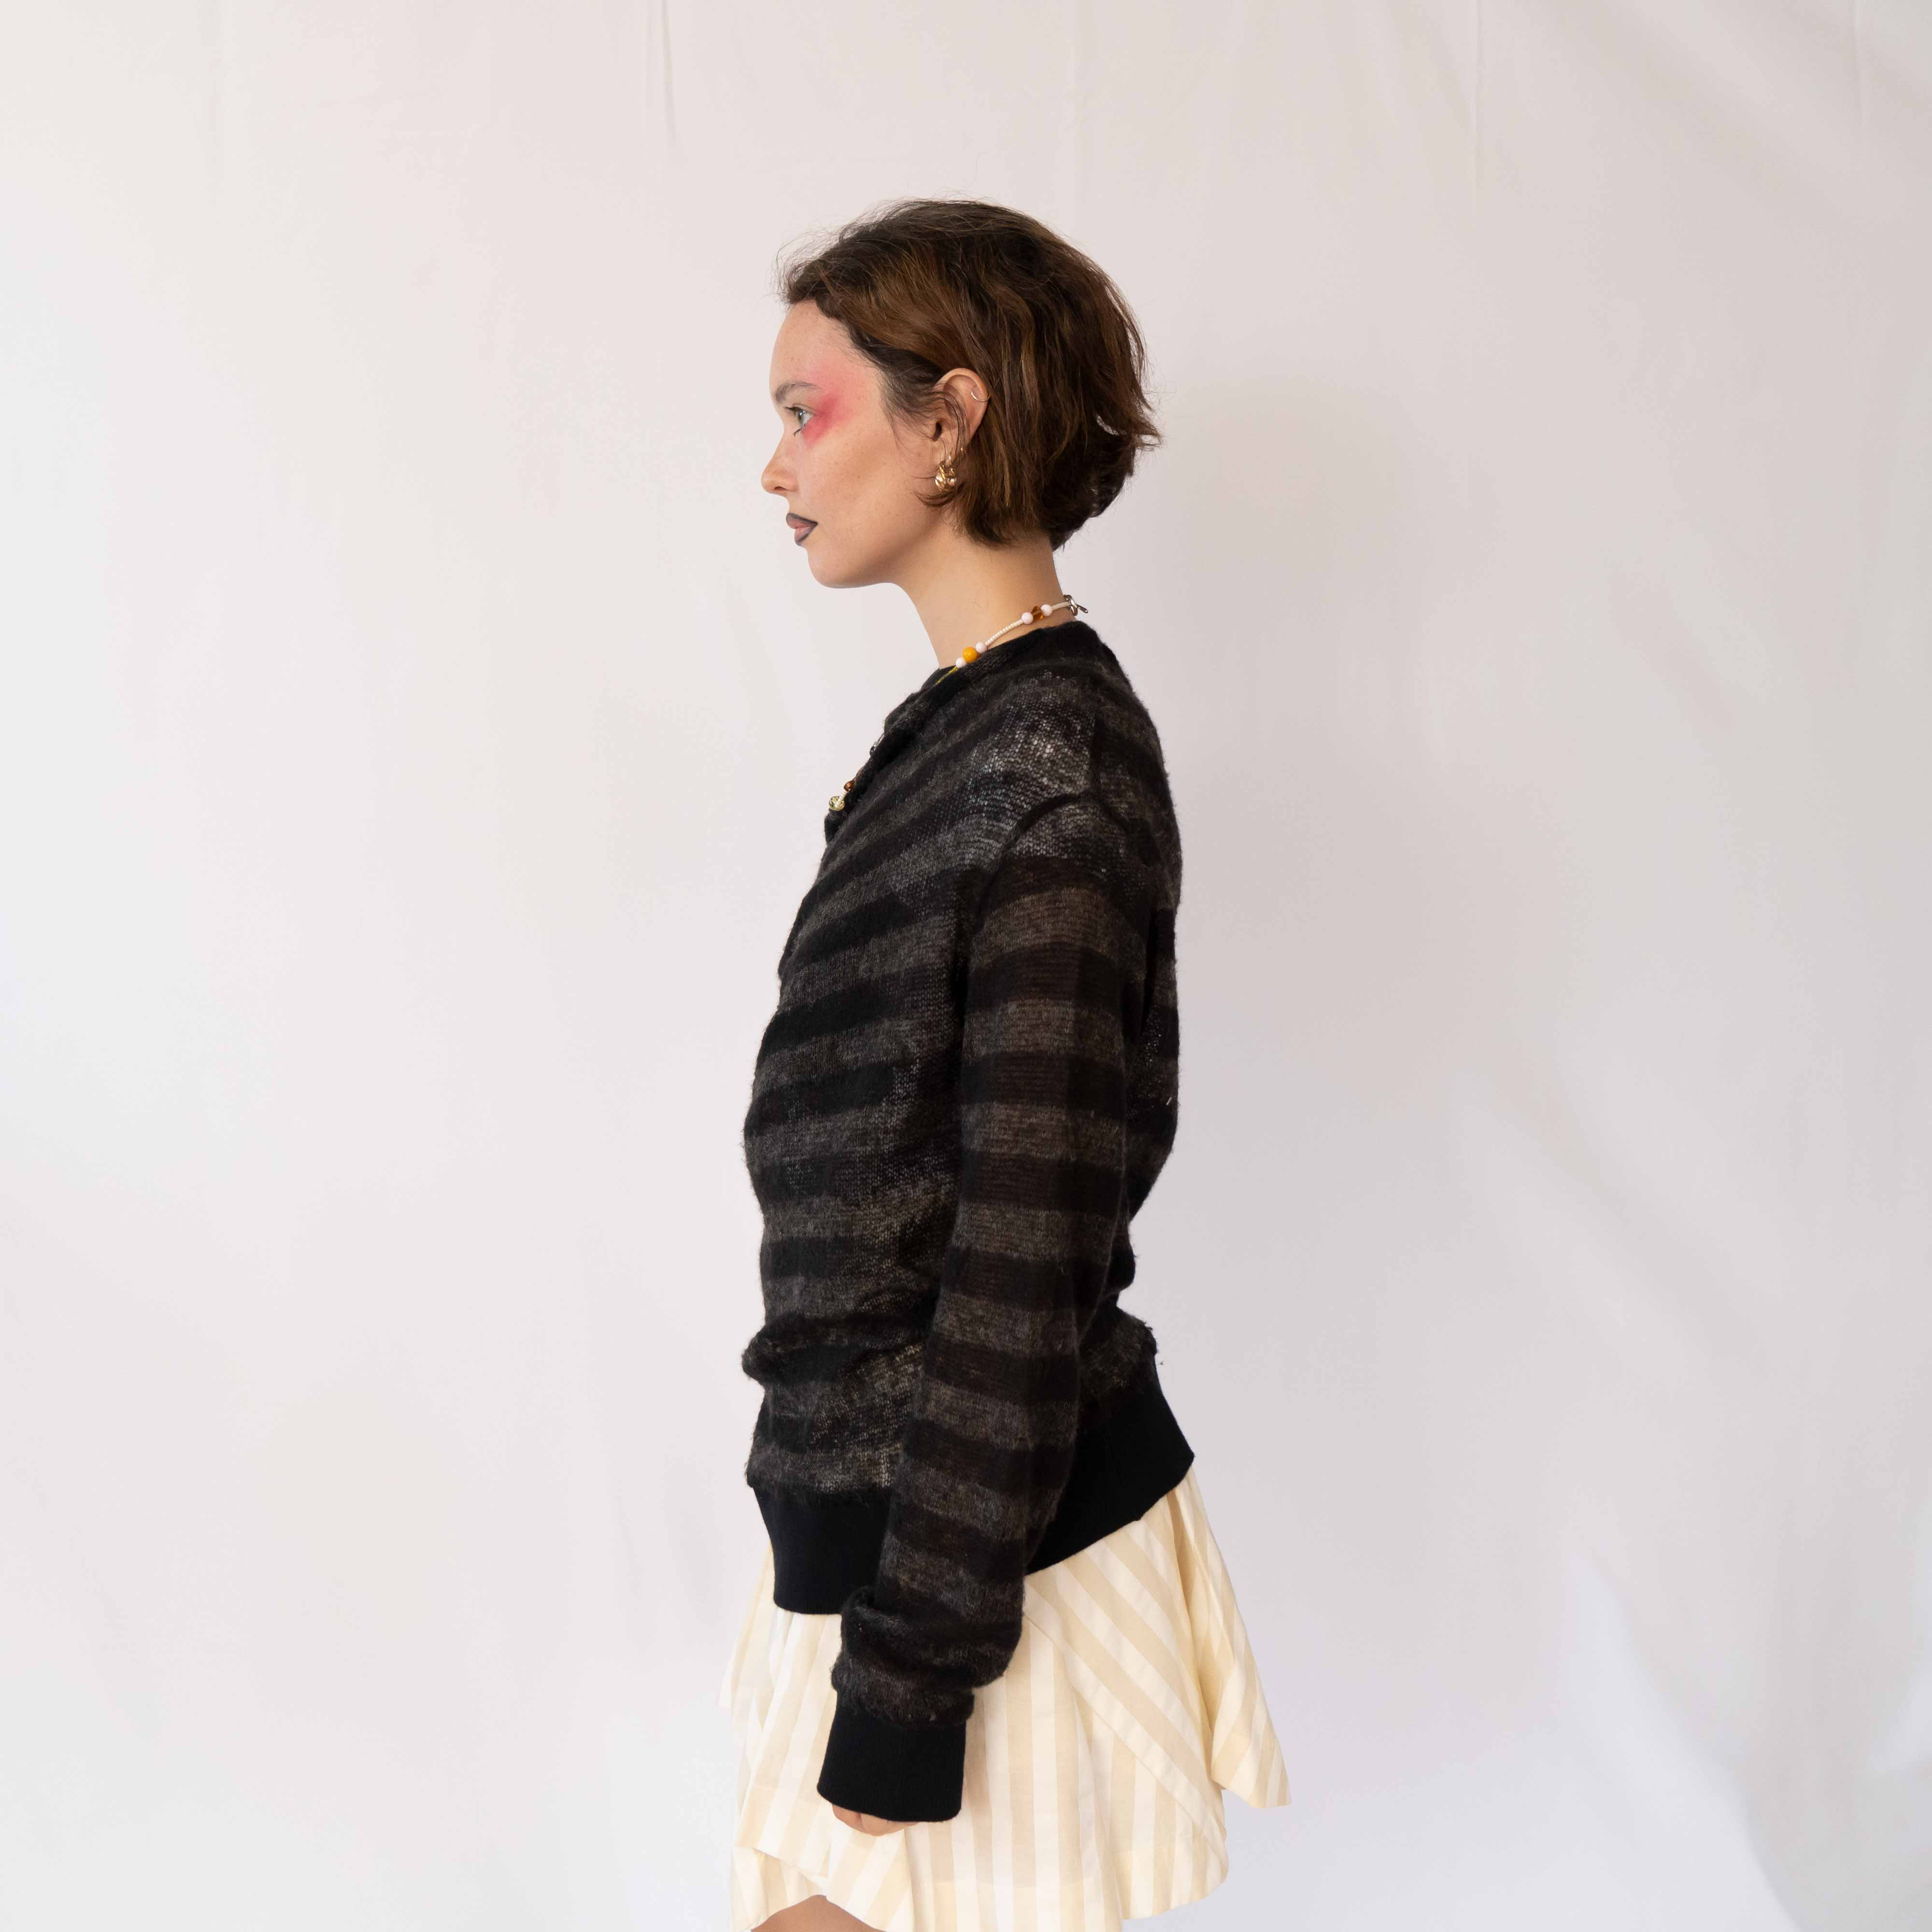 The perfectly imperfect mohair sweater. It's one of those pieces that only make sense when you try it on... and once you do, you fall in love.